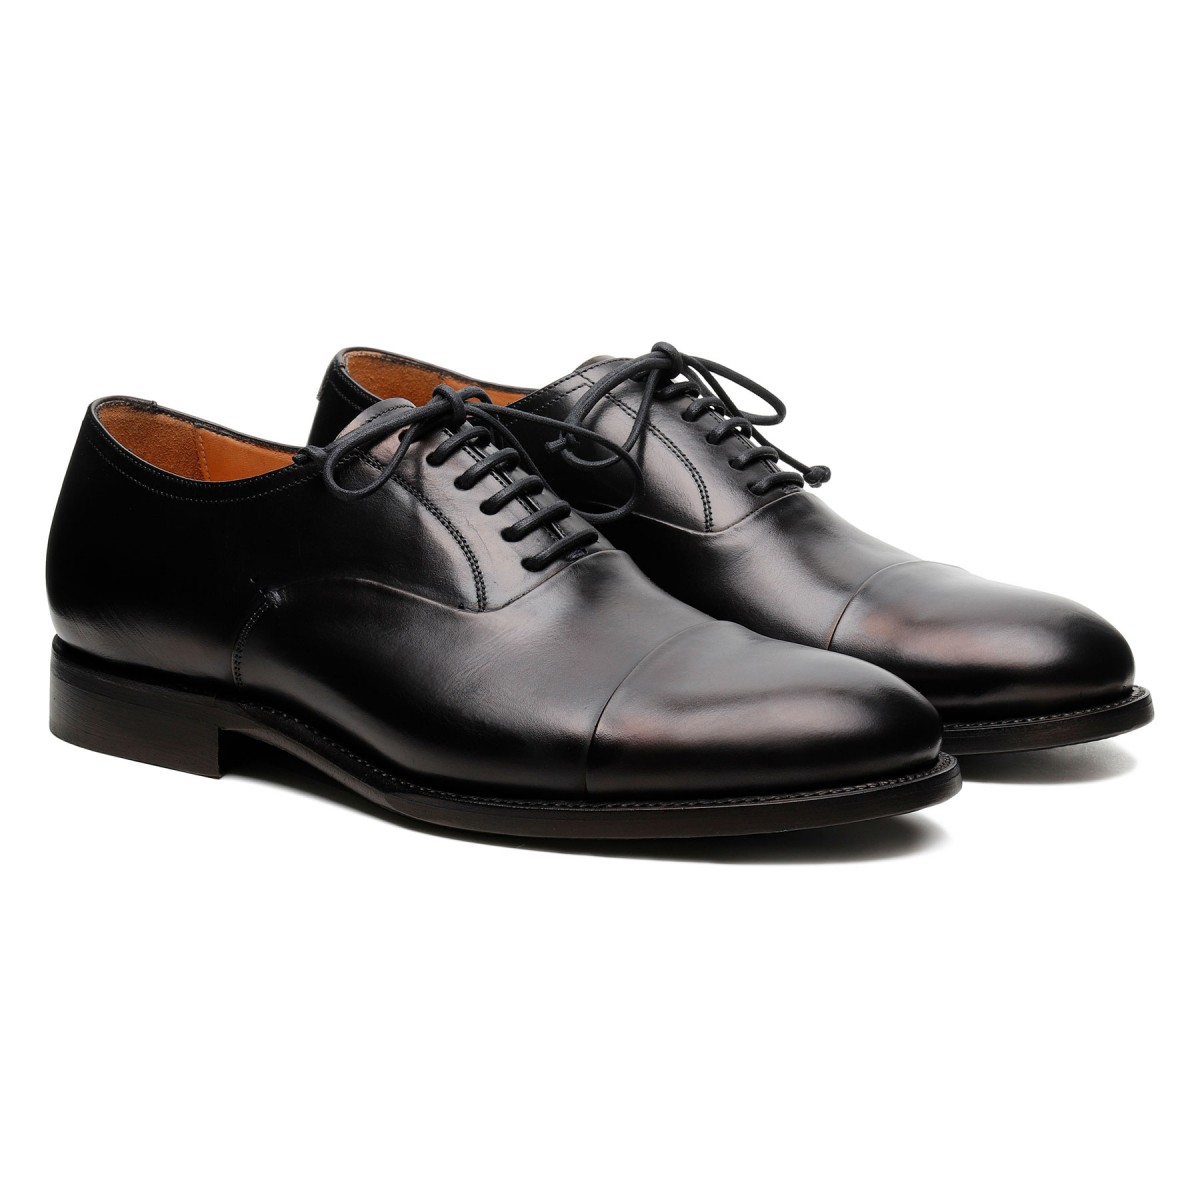 Parigi black leather Derby shoes